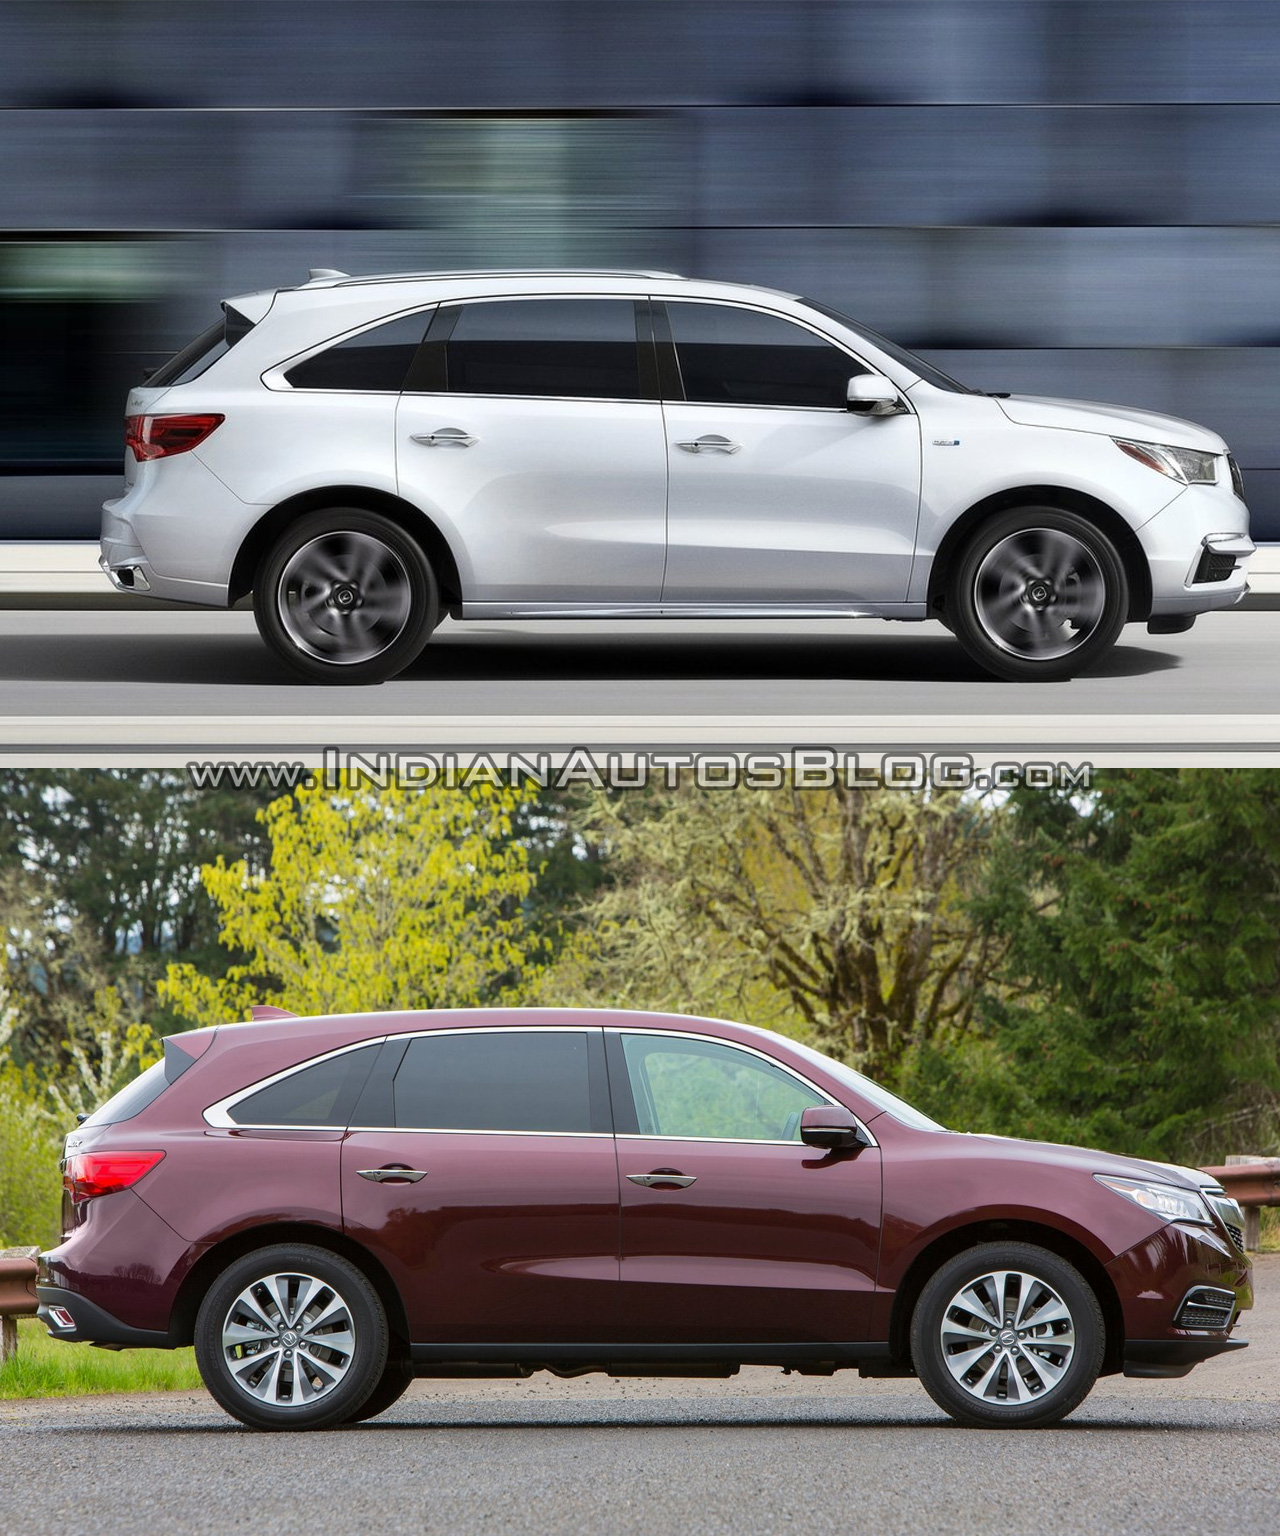 2017 Acura MDX Vs. Old Acura MDX Side Profile